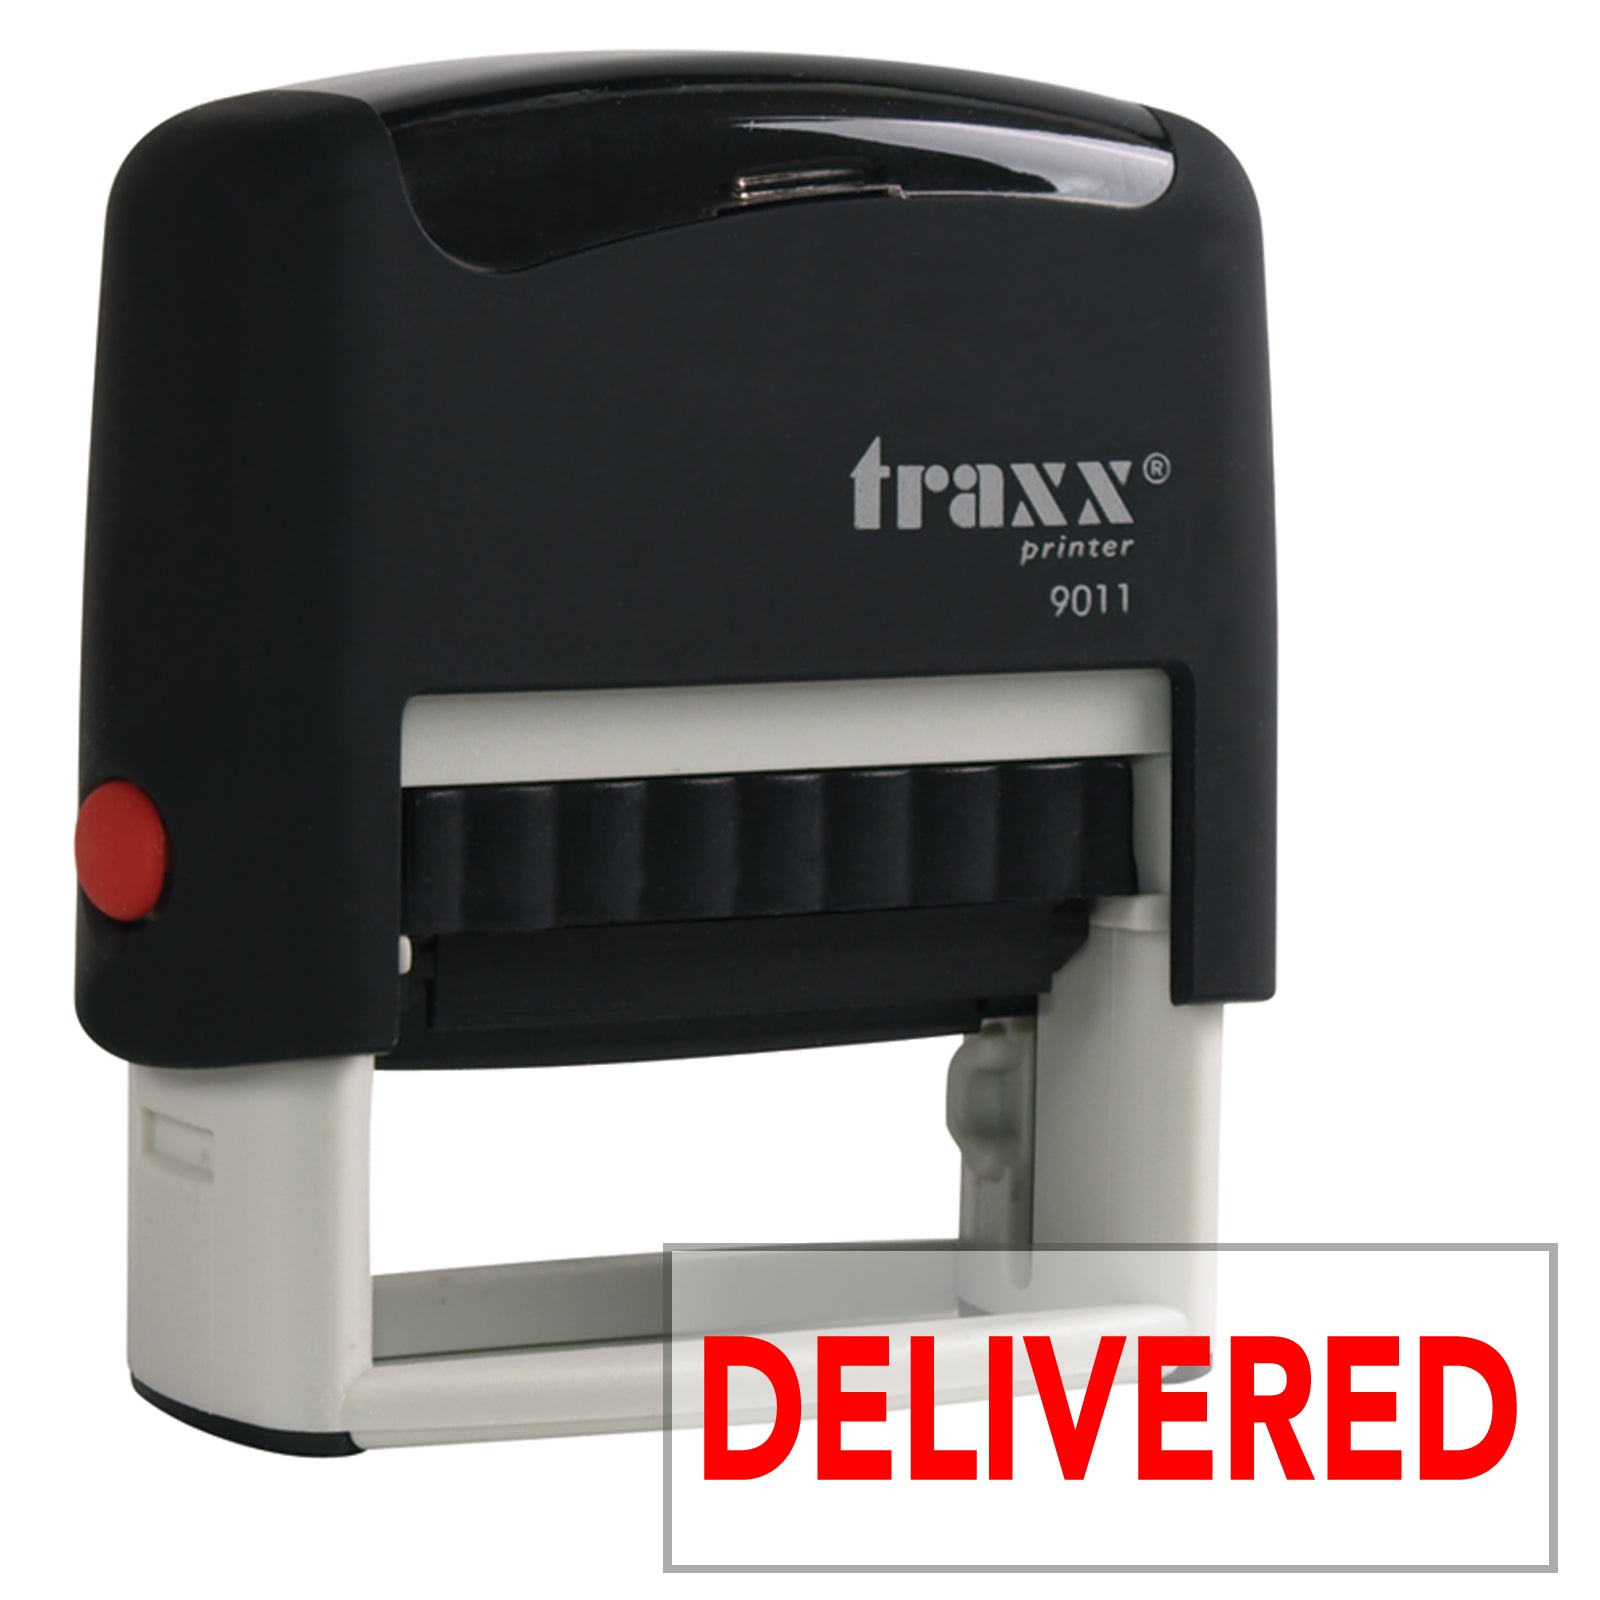 Traxx 9011 38 x 14mm Word Stamp - DELIVERED